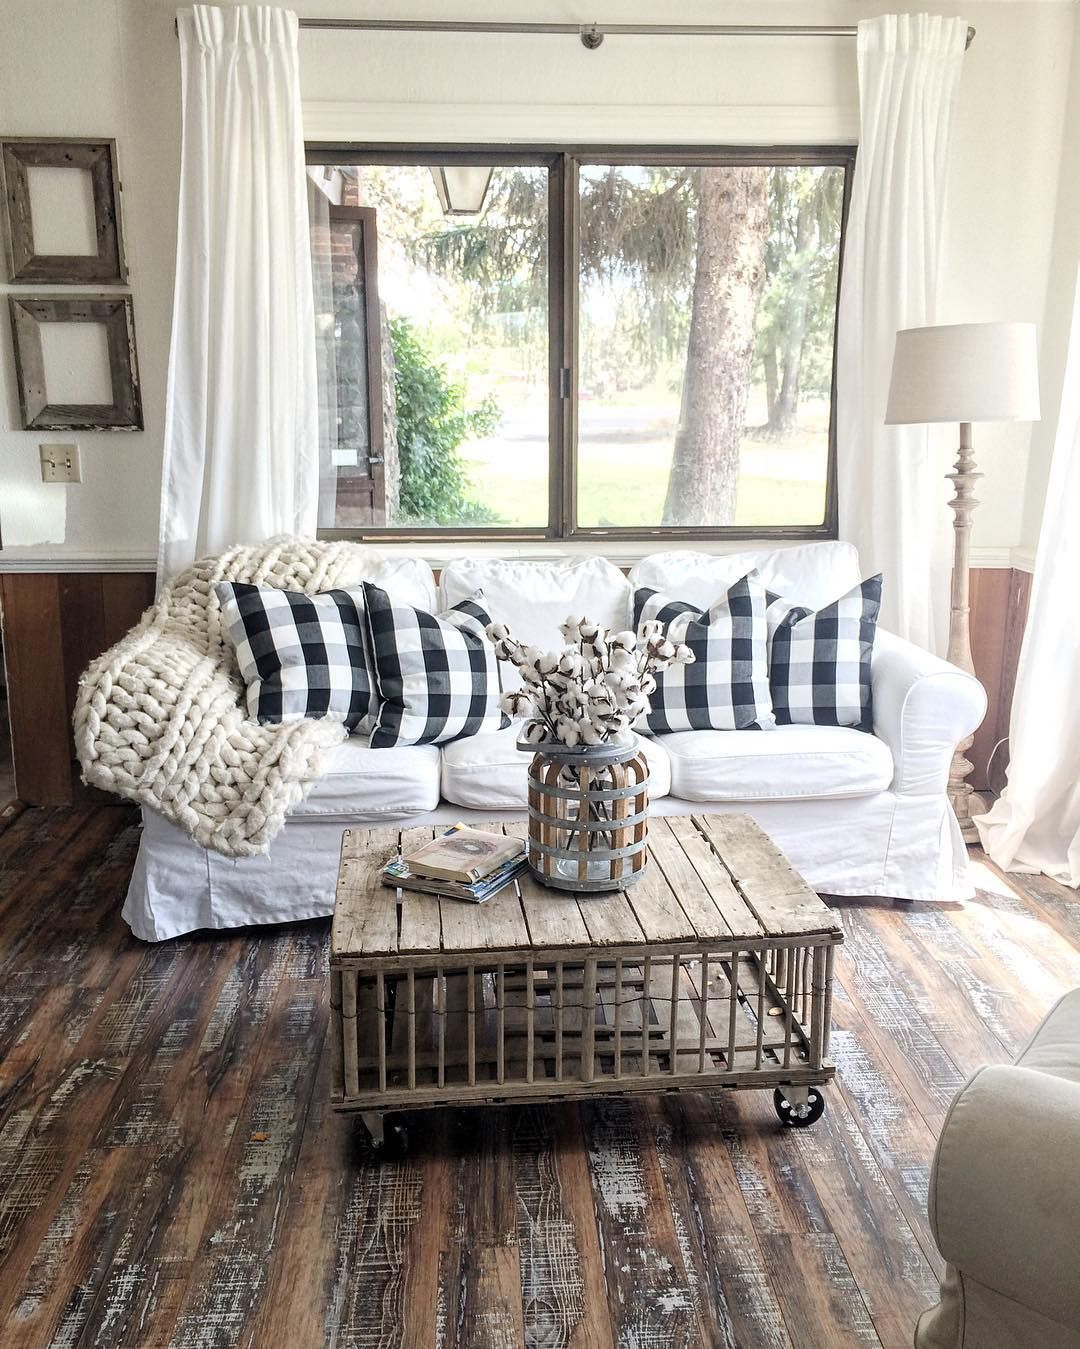 Home Decorating Ideas Farmhouse Gorgeous 60 Cozy Modern: Looks So Comfy, And Gorgeous. The Warmth Of Rustic Wood